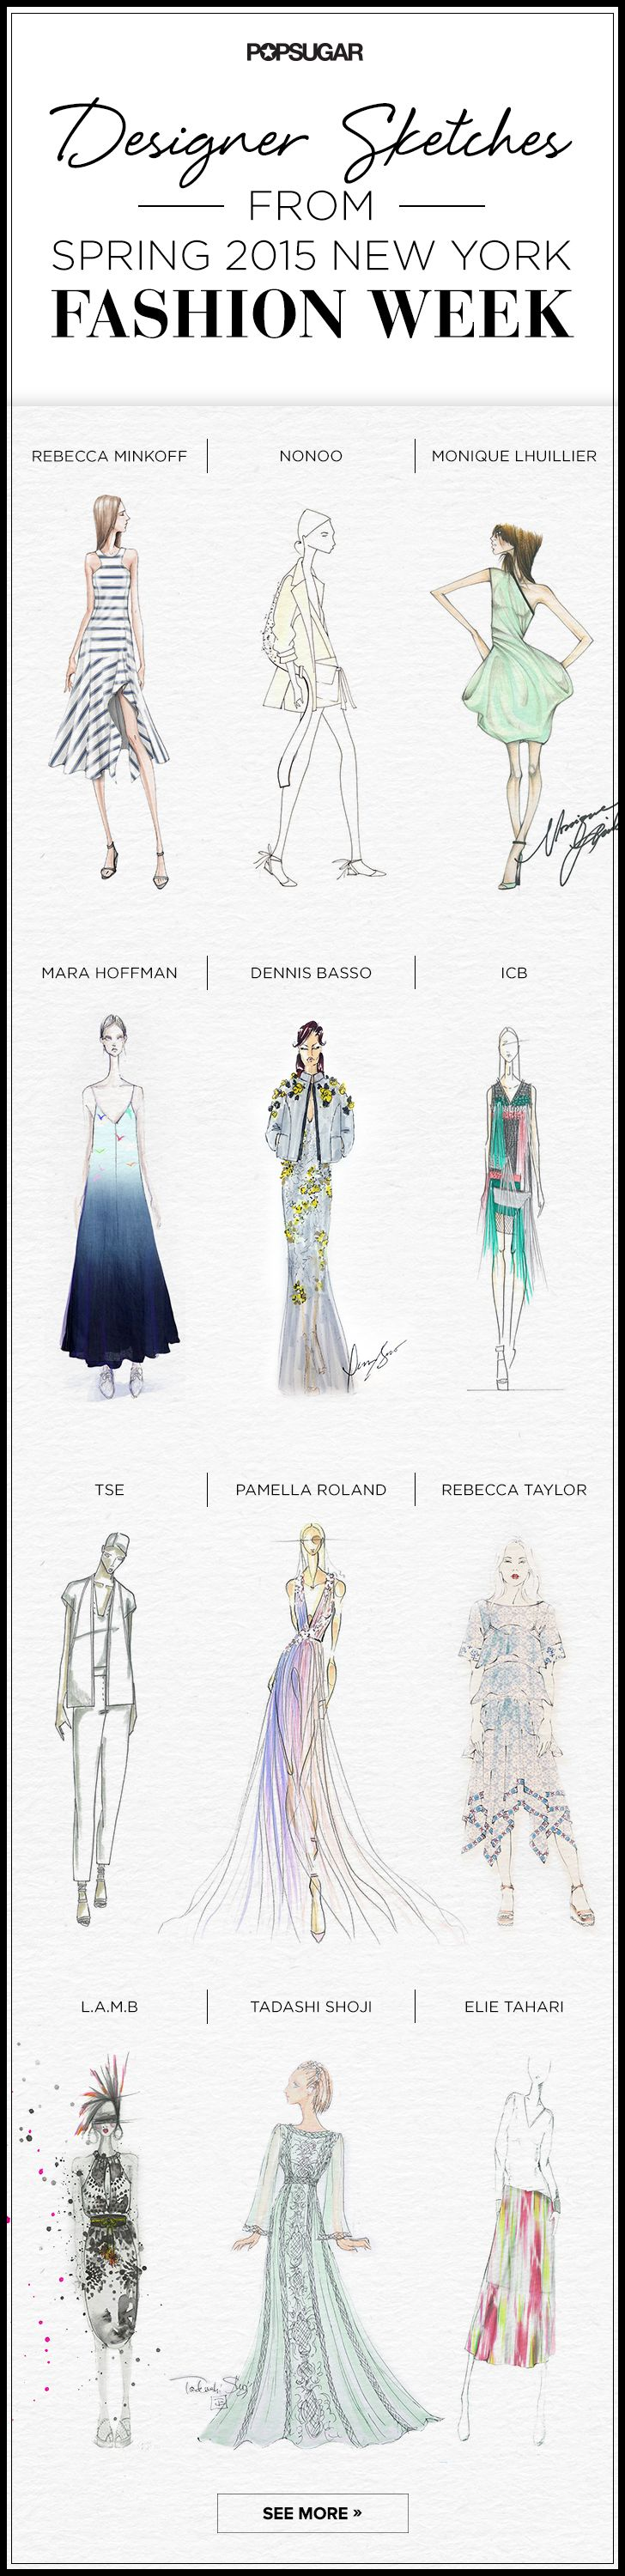 See the sketches that inspired the Spring 2015 shows